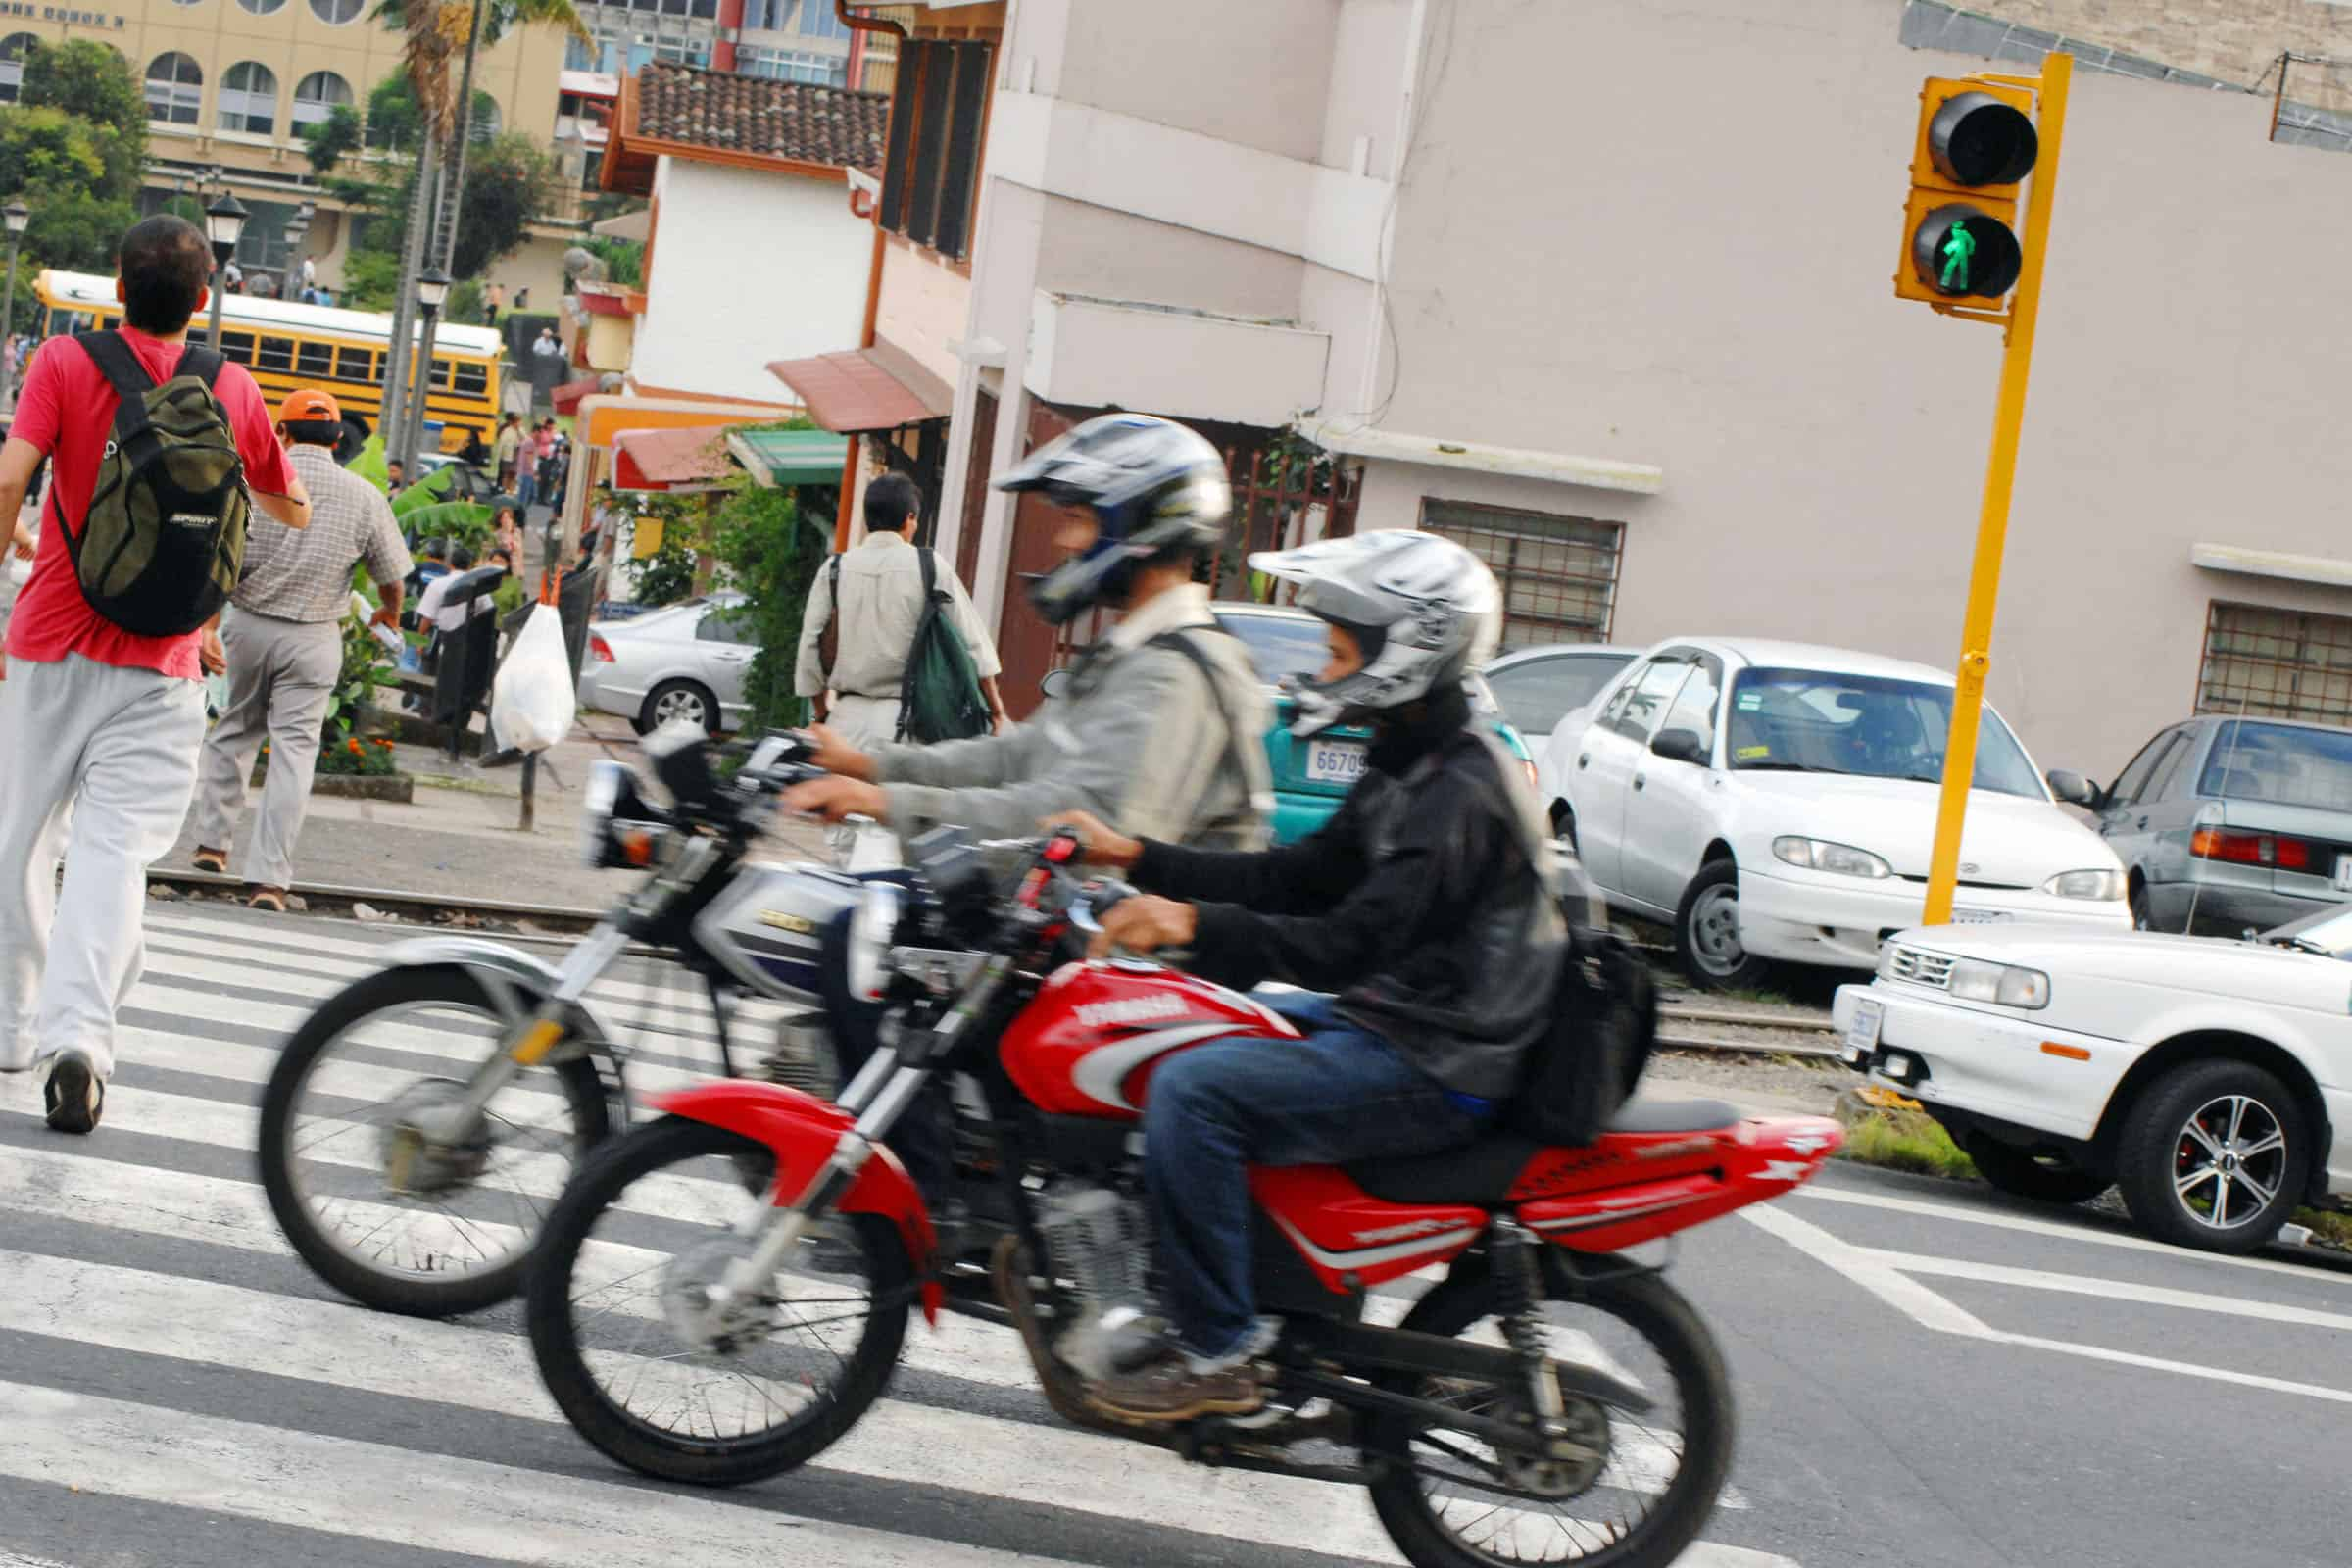 Motorcyclists run a red light in San José as pedestrians are in the crosswalk on Second Avenue near the National Museum.